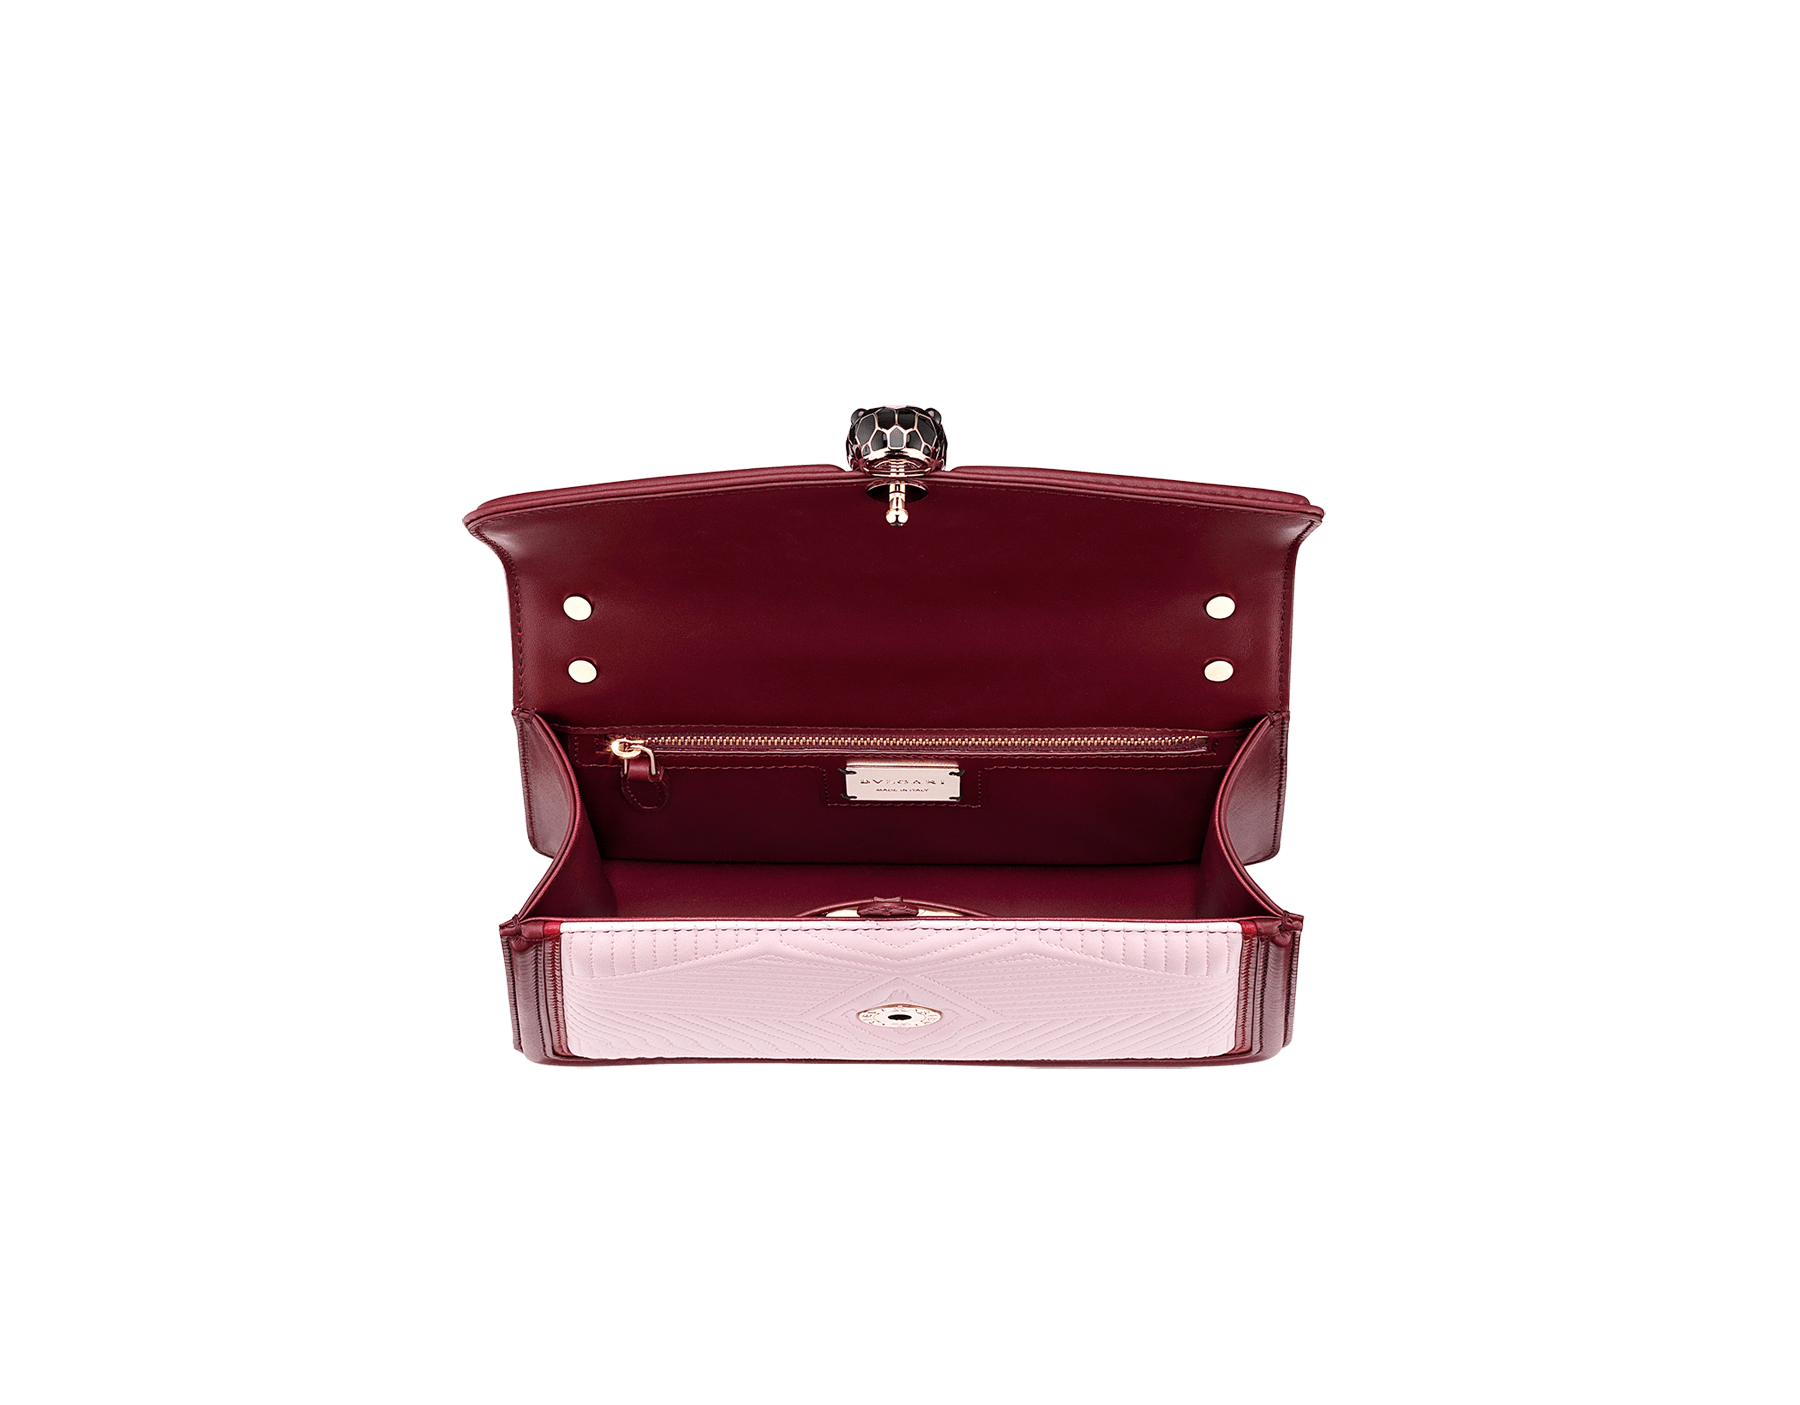 """Serpenti Diamond Blast"" shoulder bag in rosa di francia quilted calf leather and Roman garnet calf leather frames. Iconic snakehead closure in light gold plated brass enriched with black and rosa di francia enamel and black onyx eyes. 289462 image 4"